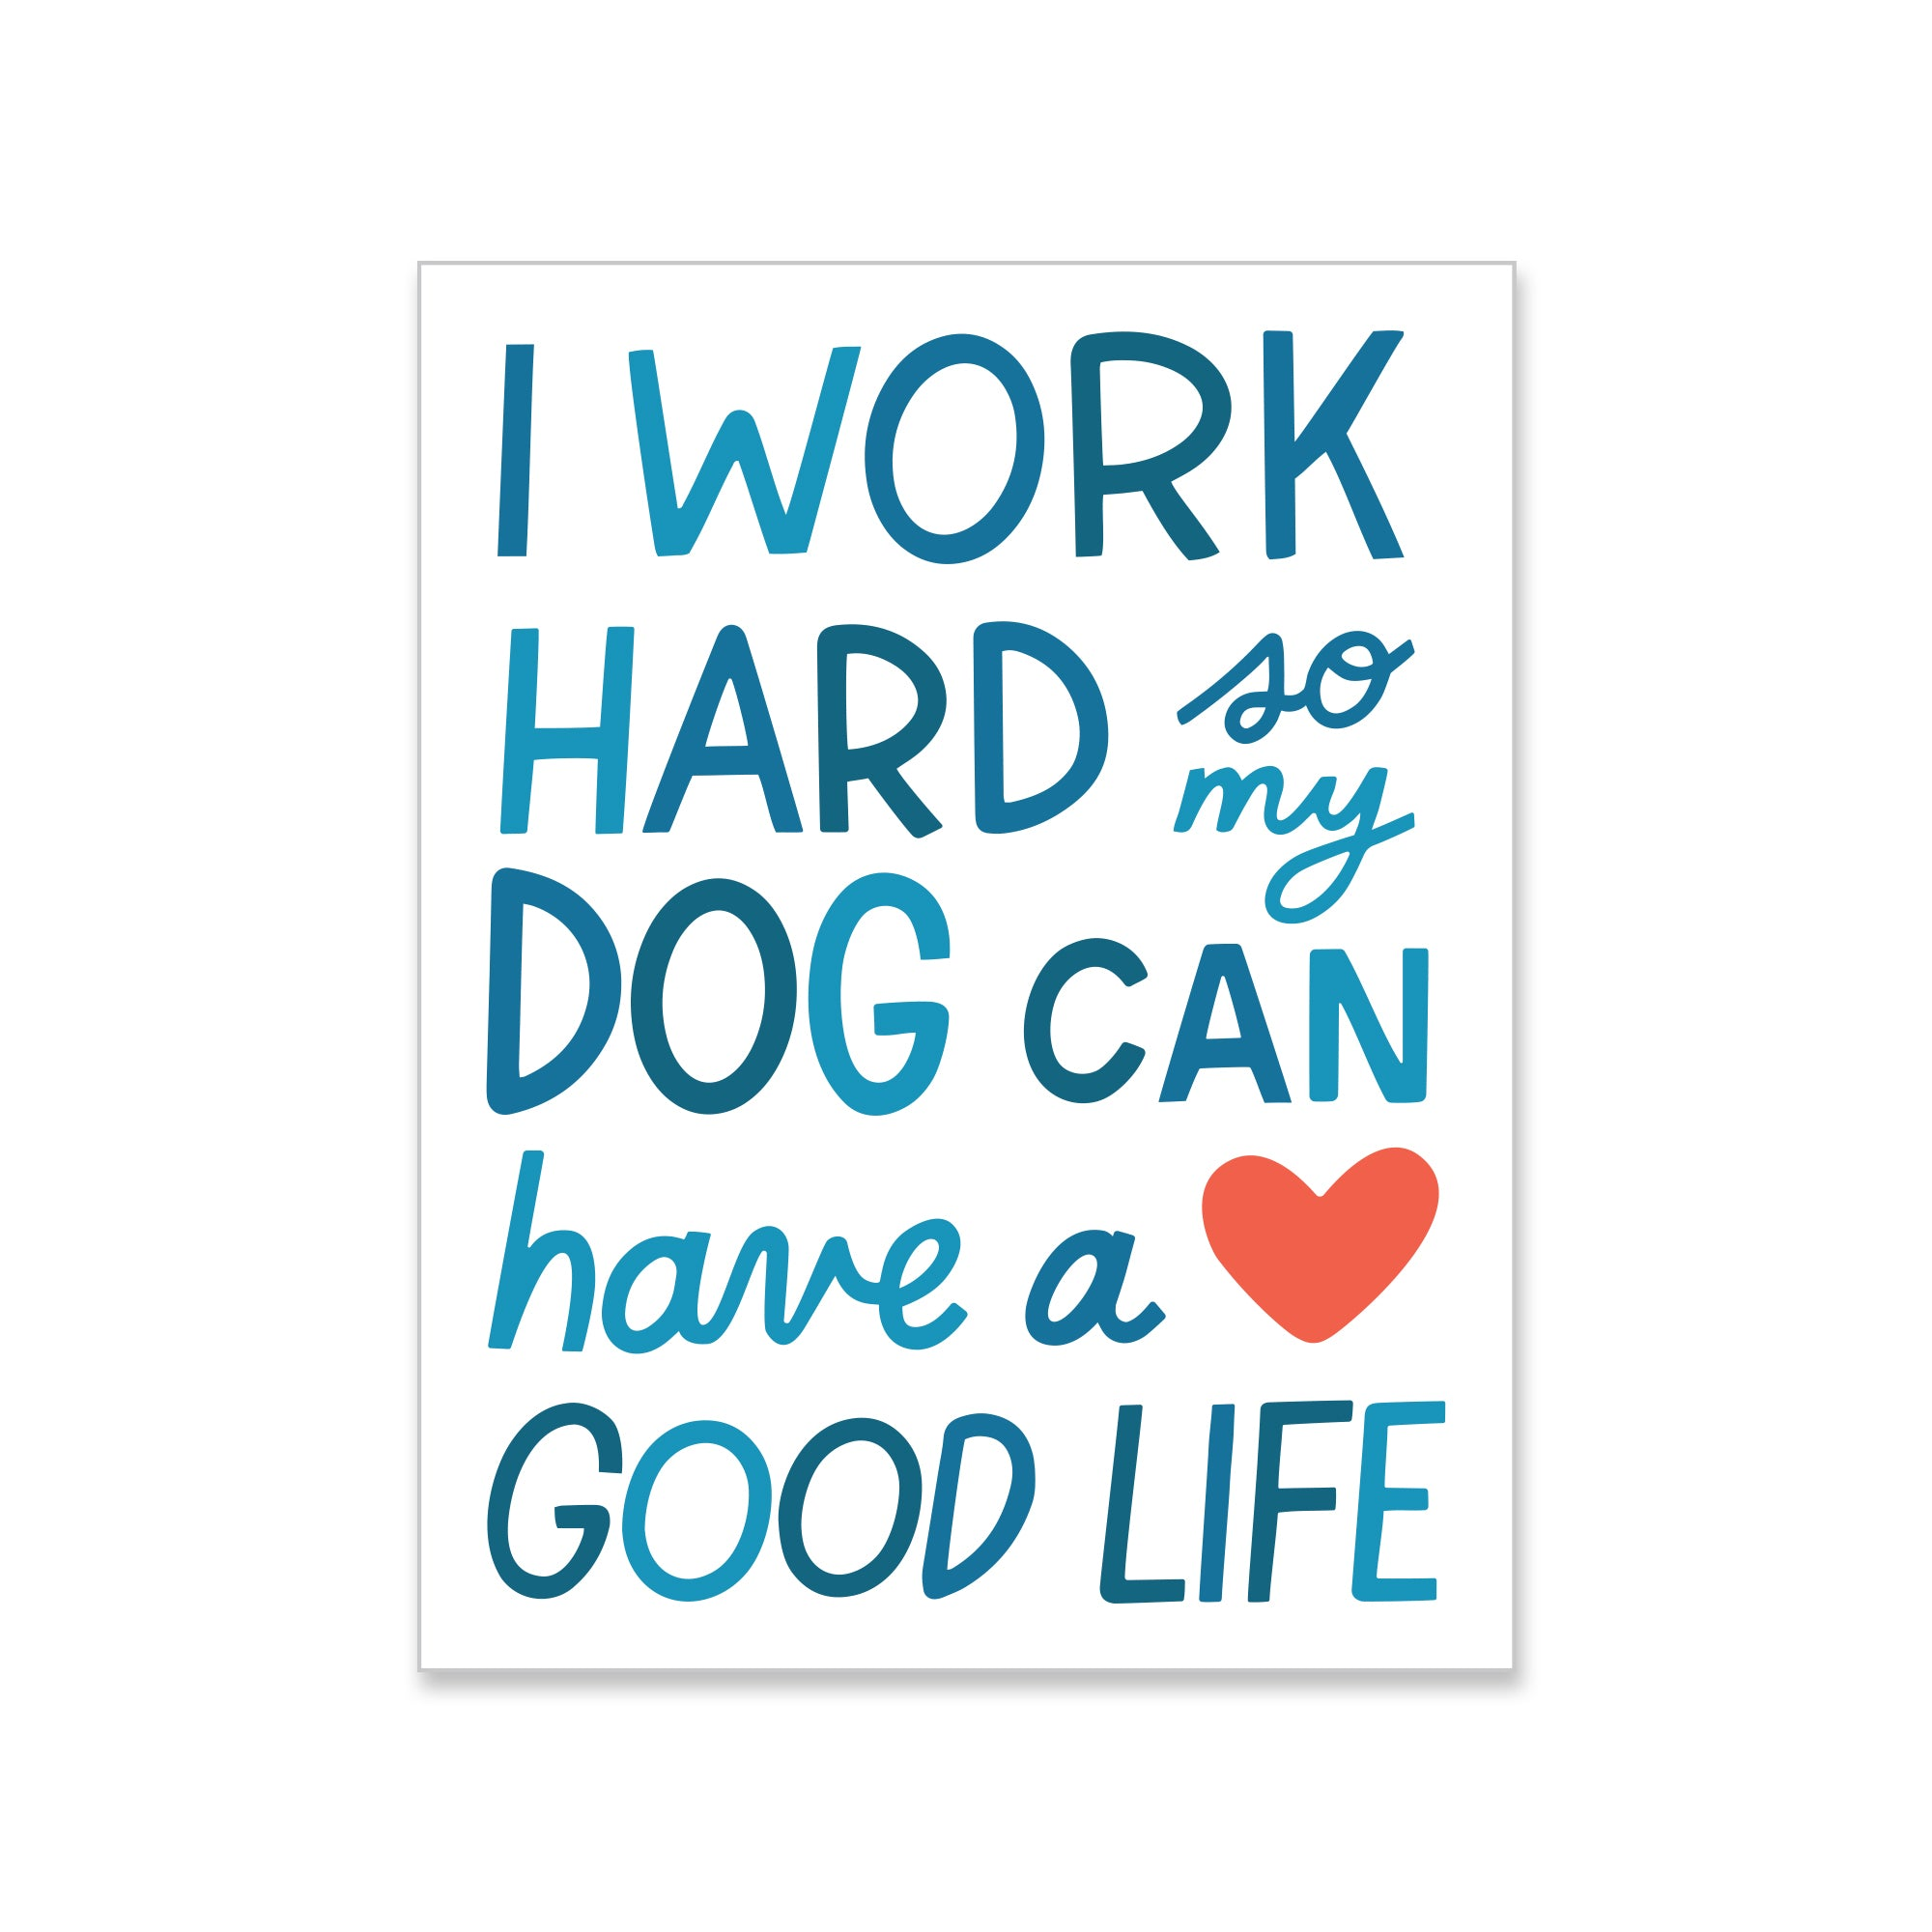 Dog Can Have a Better Life Sticker